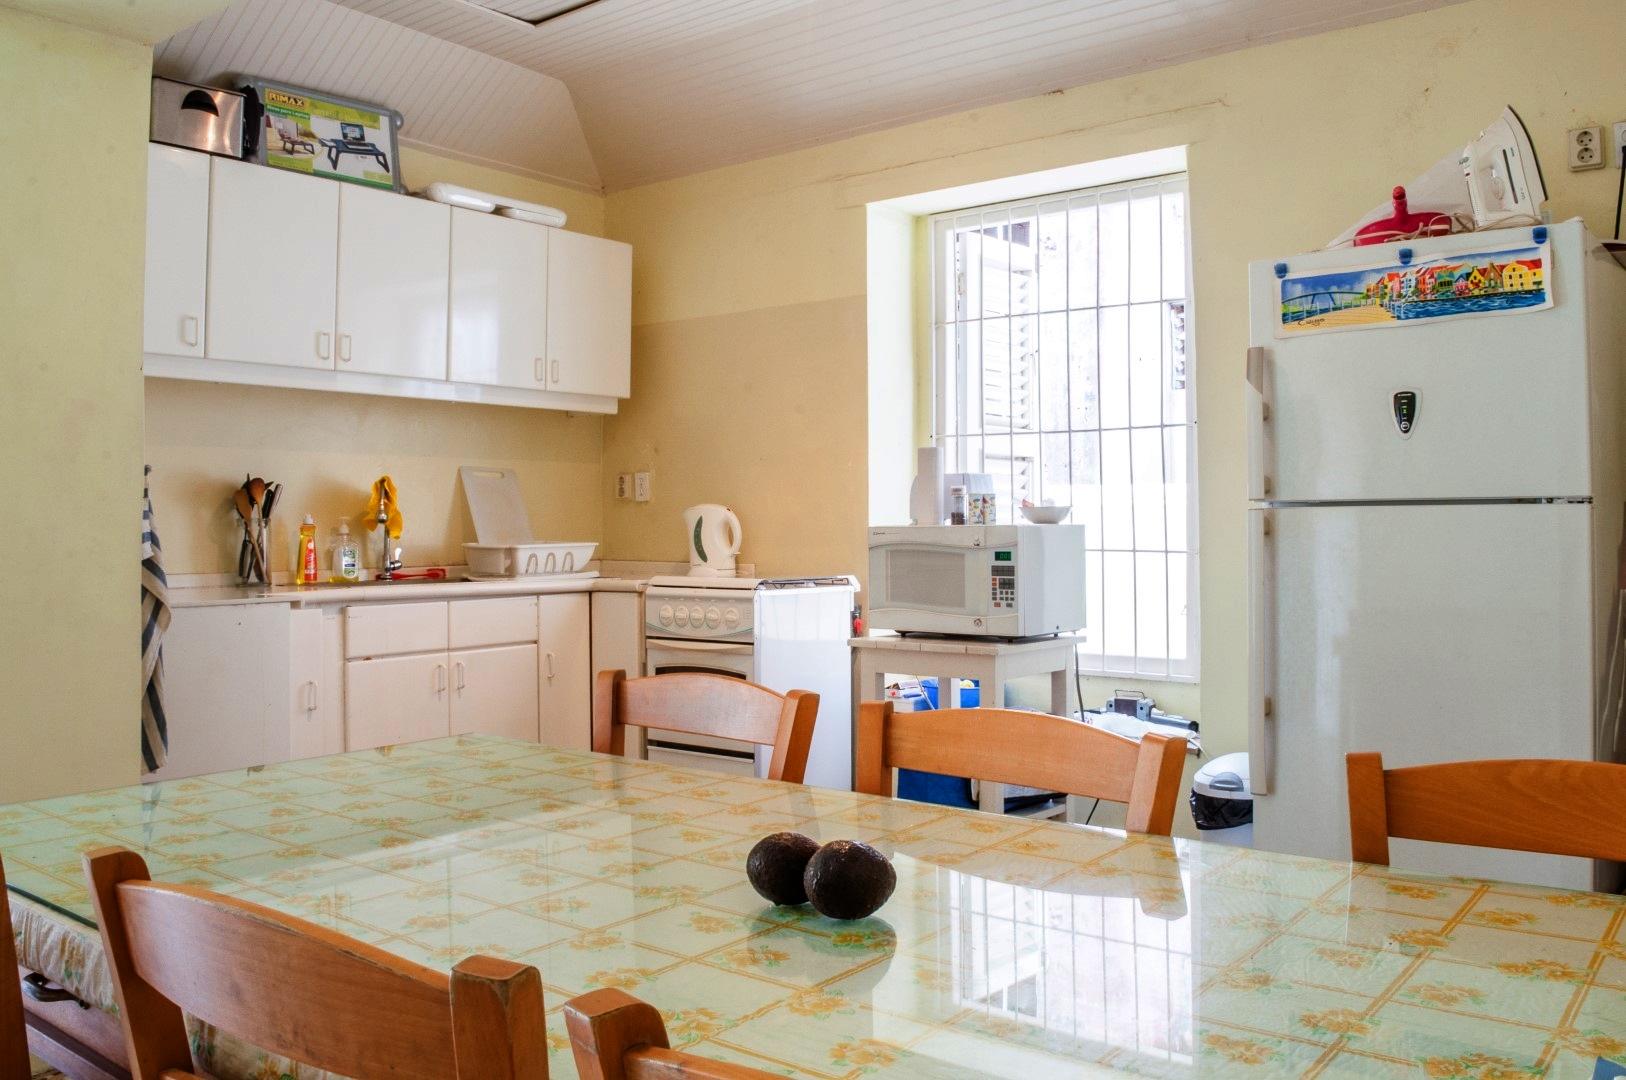 Everything in the Kitchen is fully functional and equipped with the comforts of home.